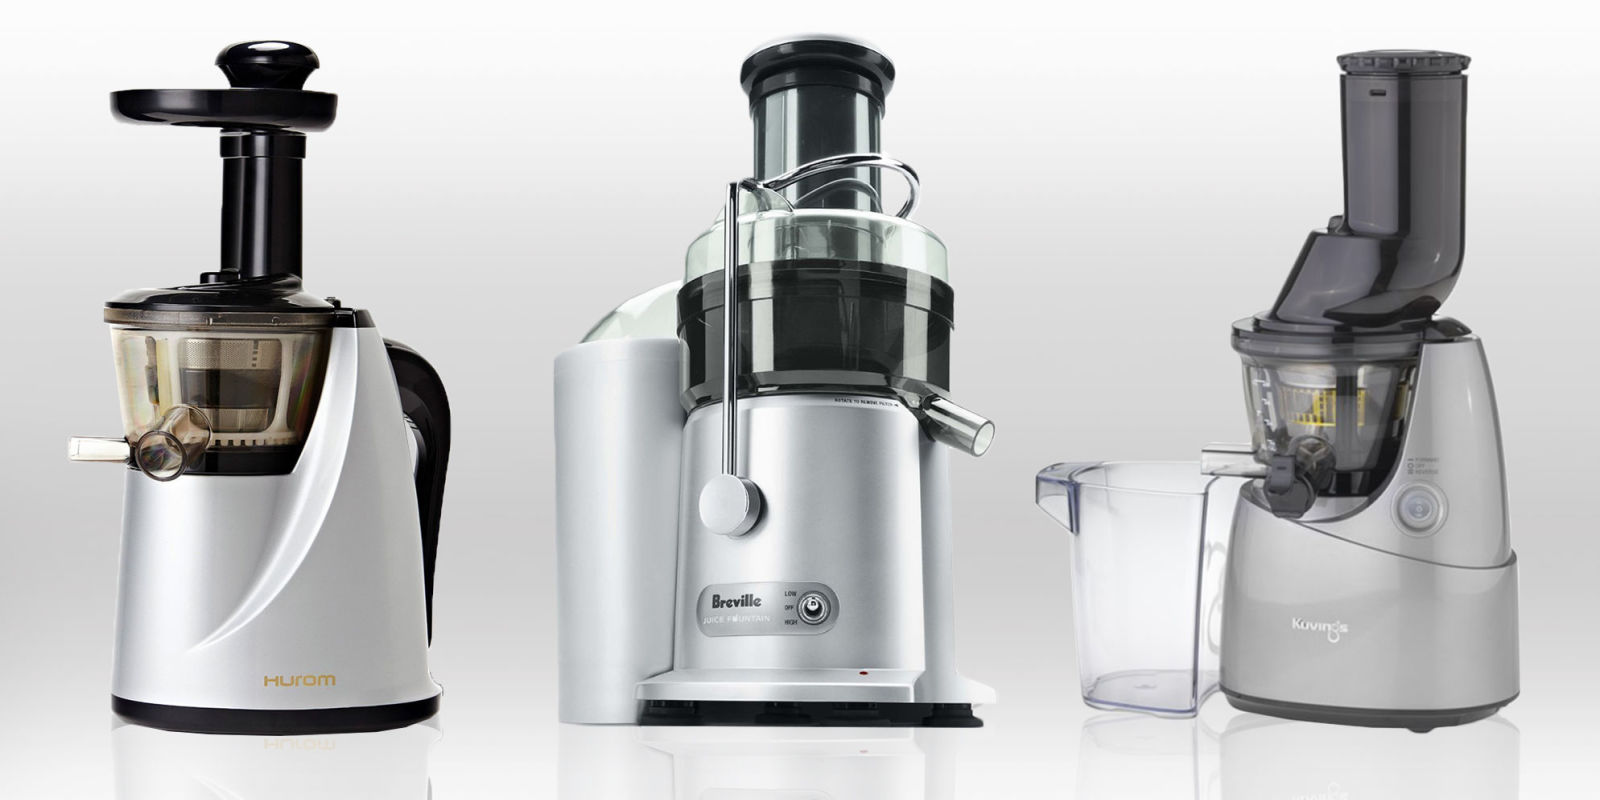 Top Rated Masticating Juicers 2017 : 8 Best Cold Press Juicers in 2017 - Slow and Masticating Juicer Machines